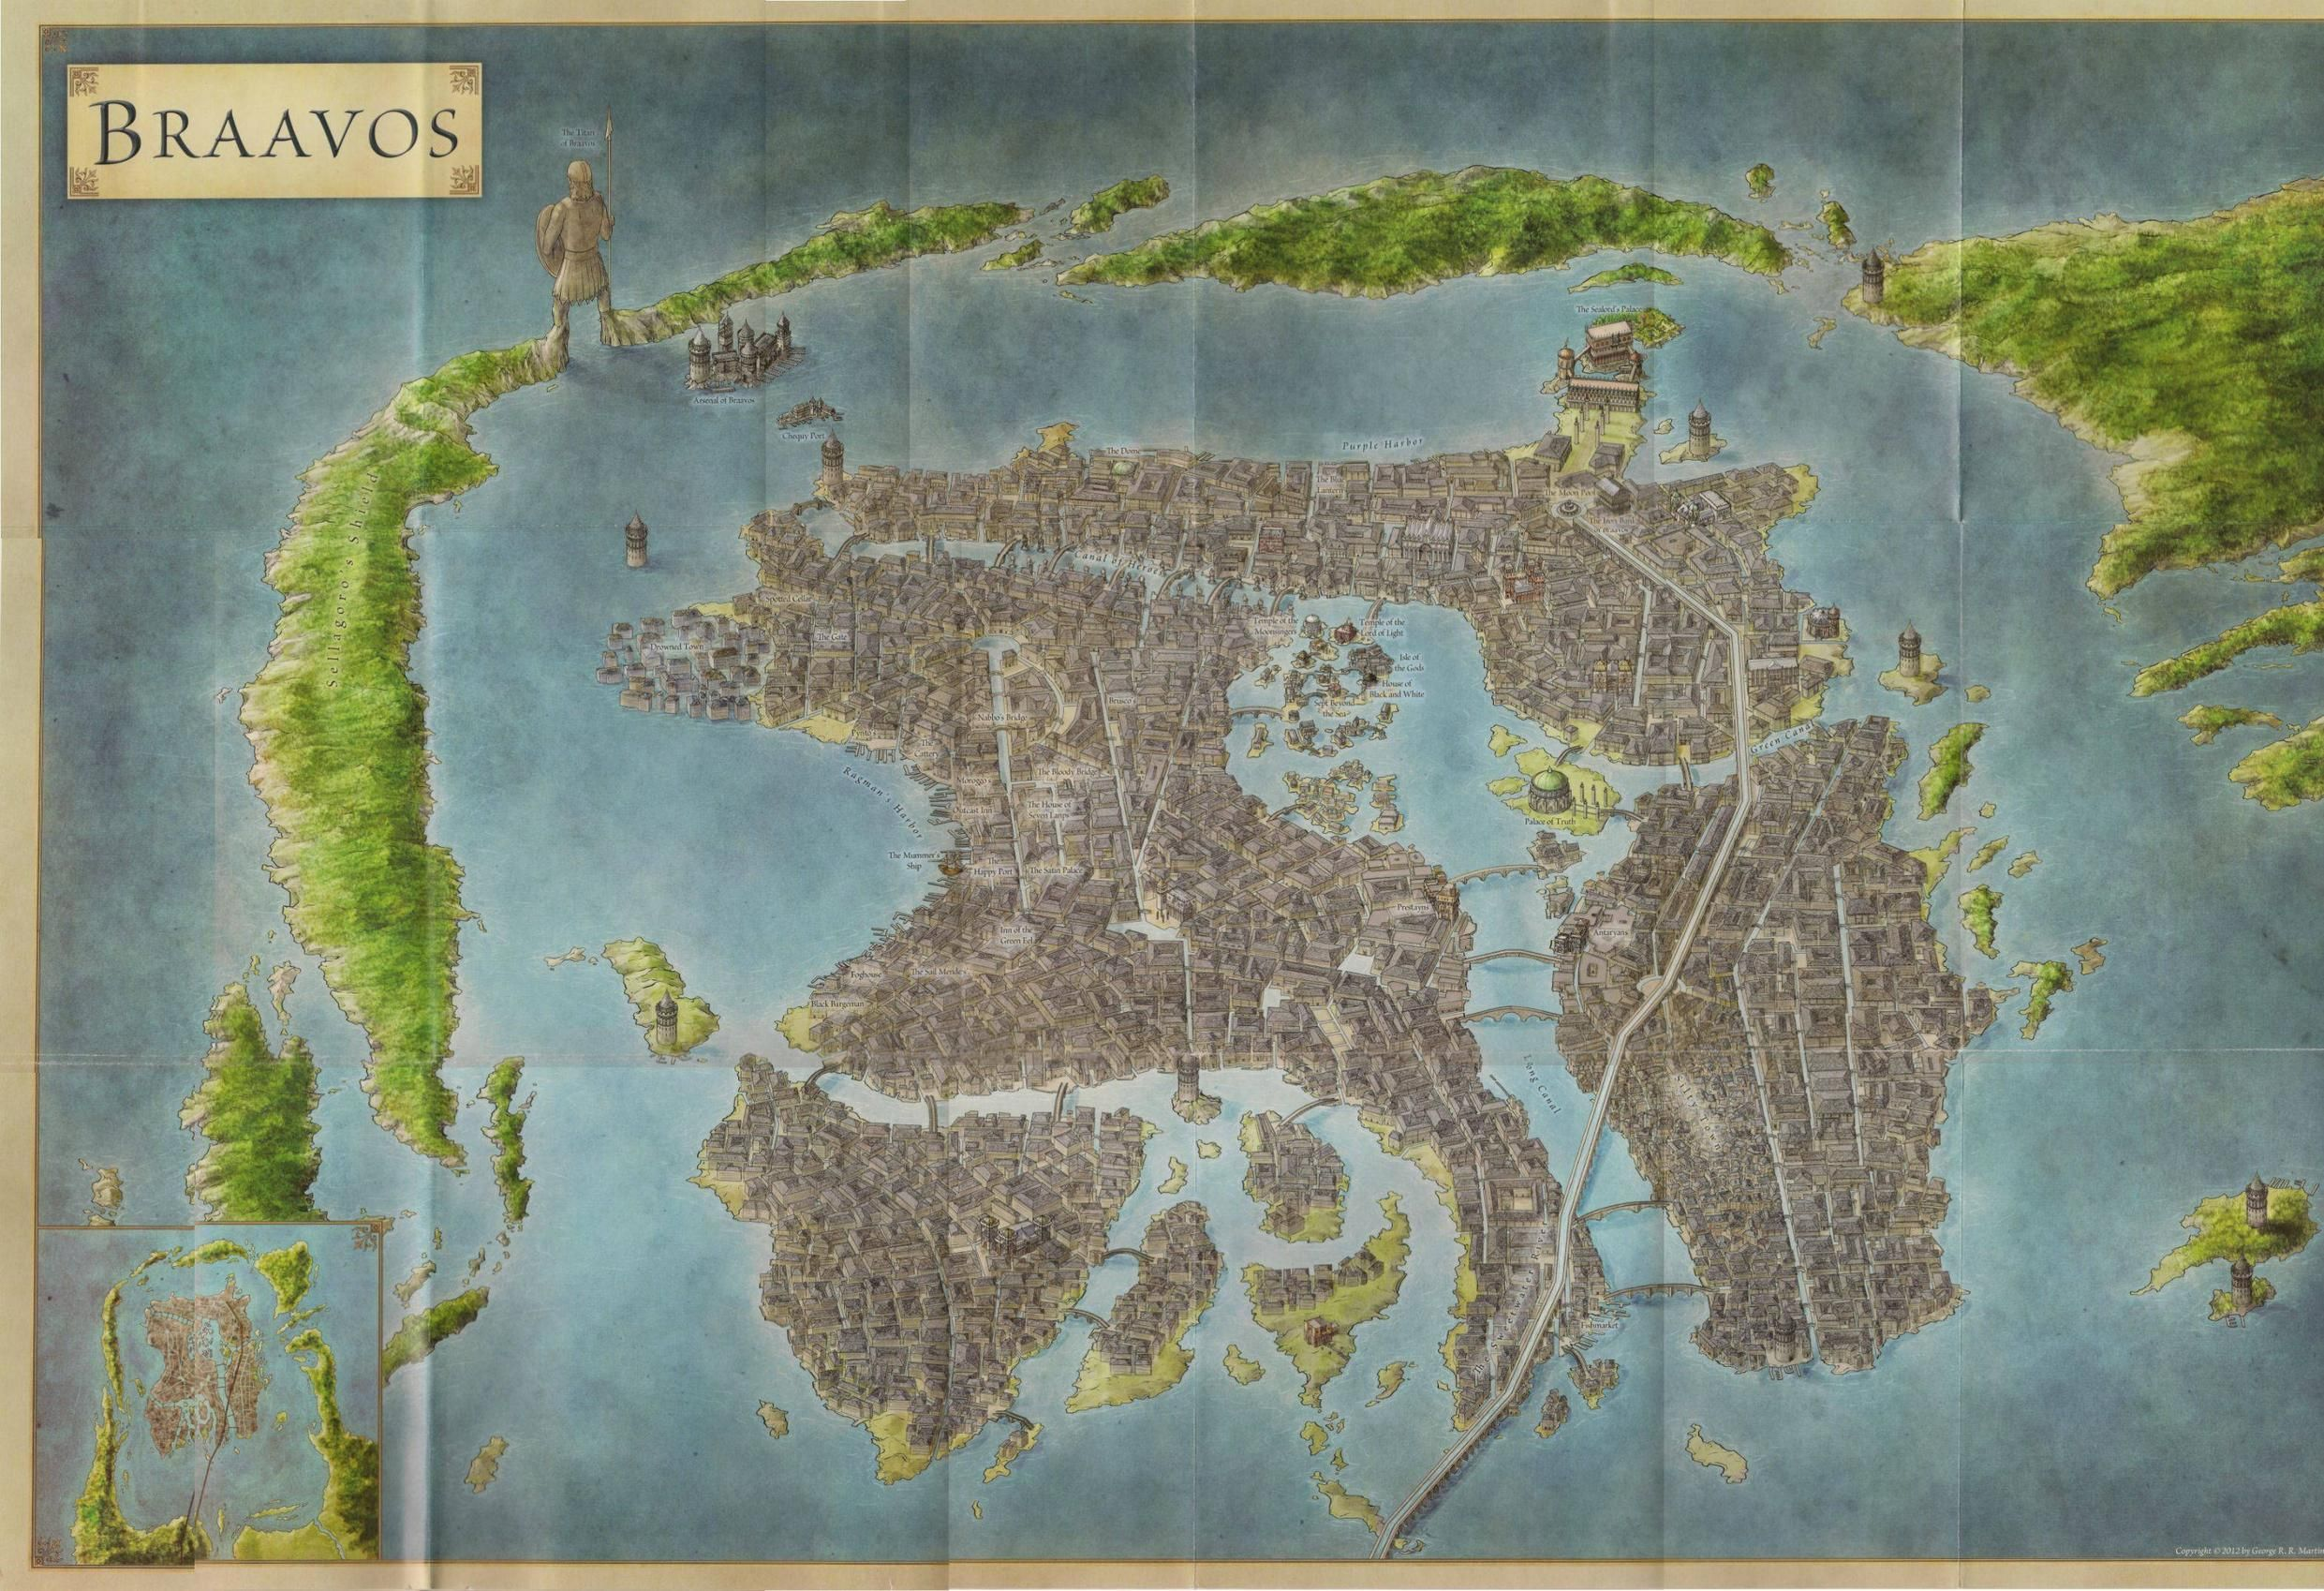 map of Braavos, GoT